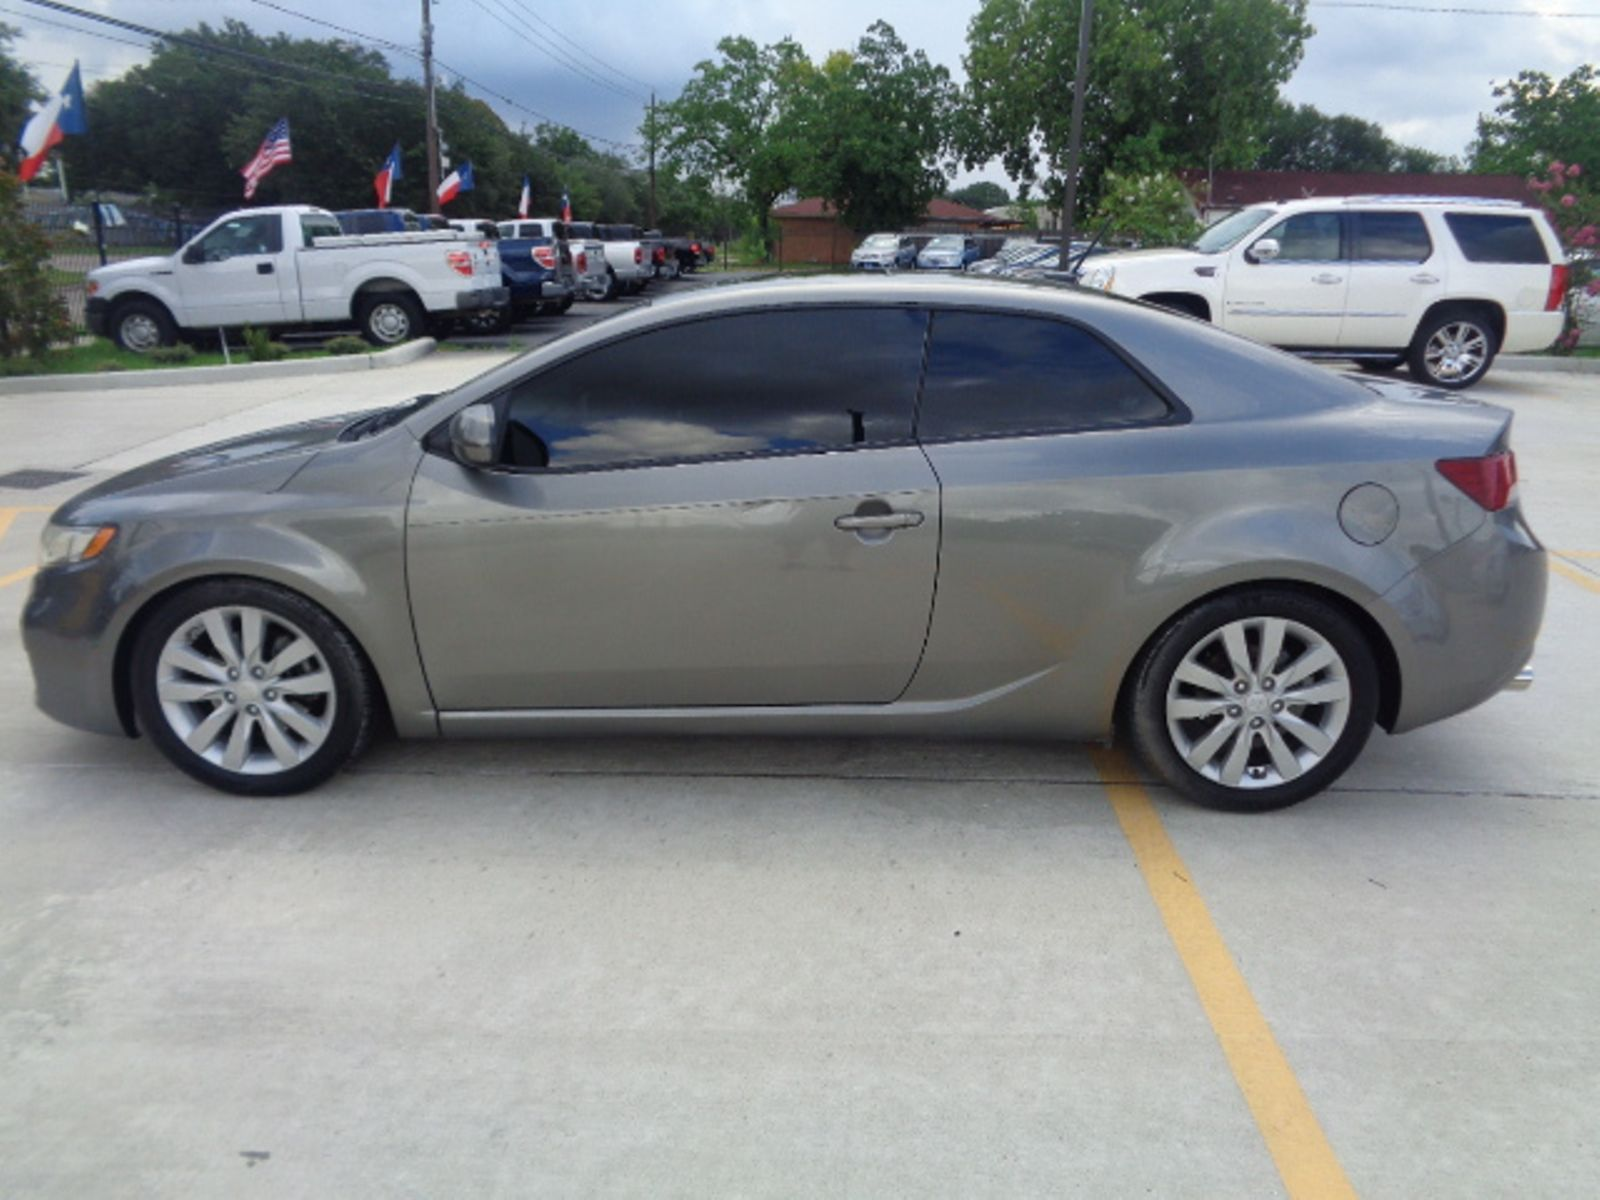 koup forte kia and auction vid sale cars car salvage damaged for